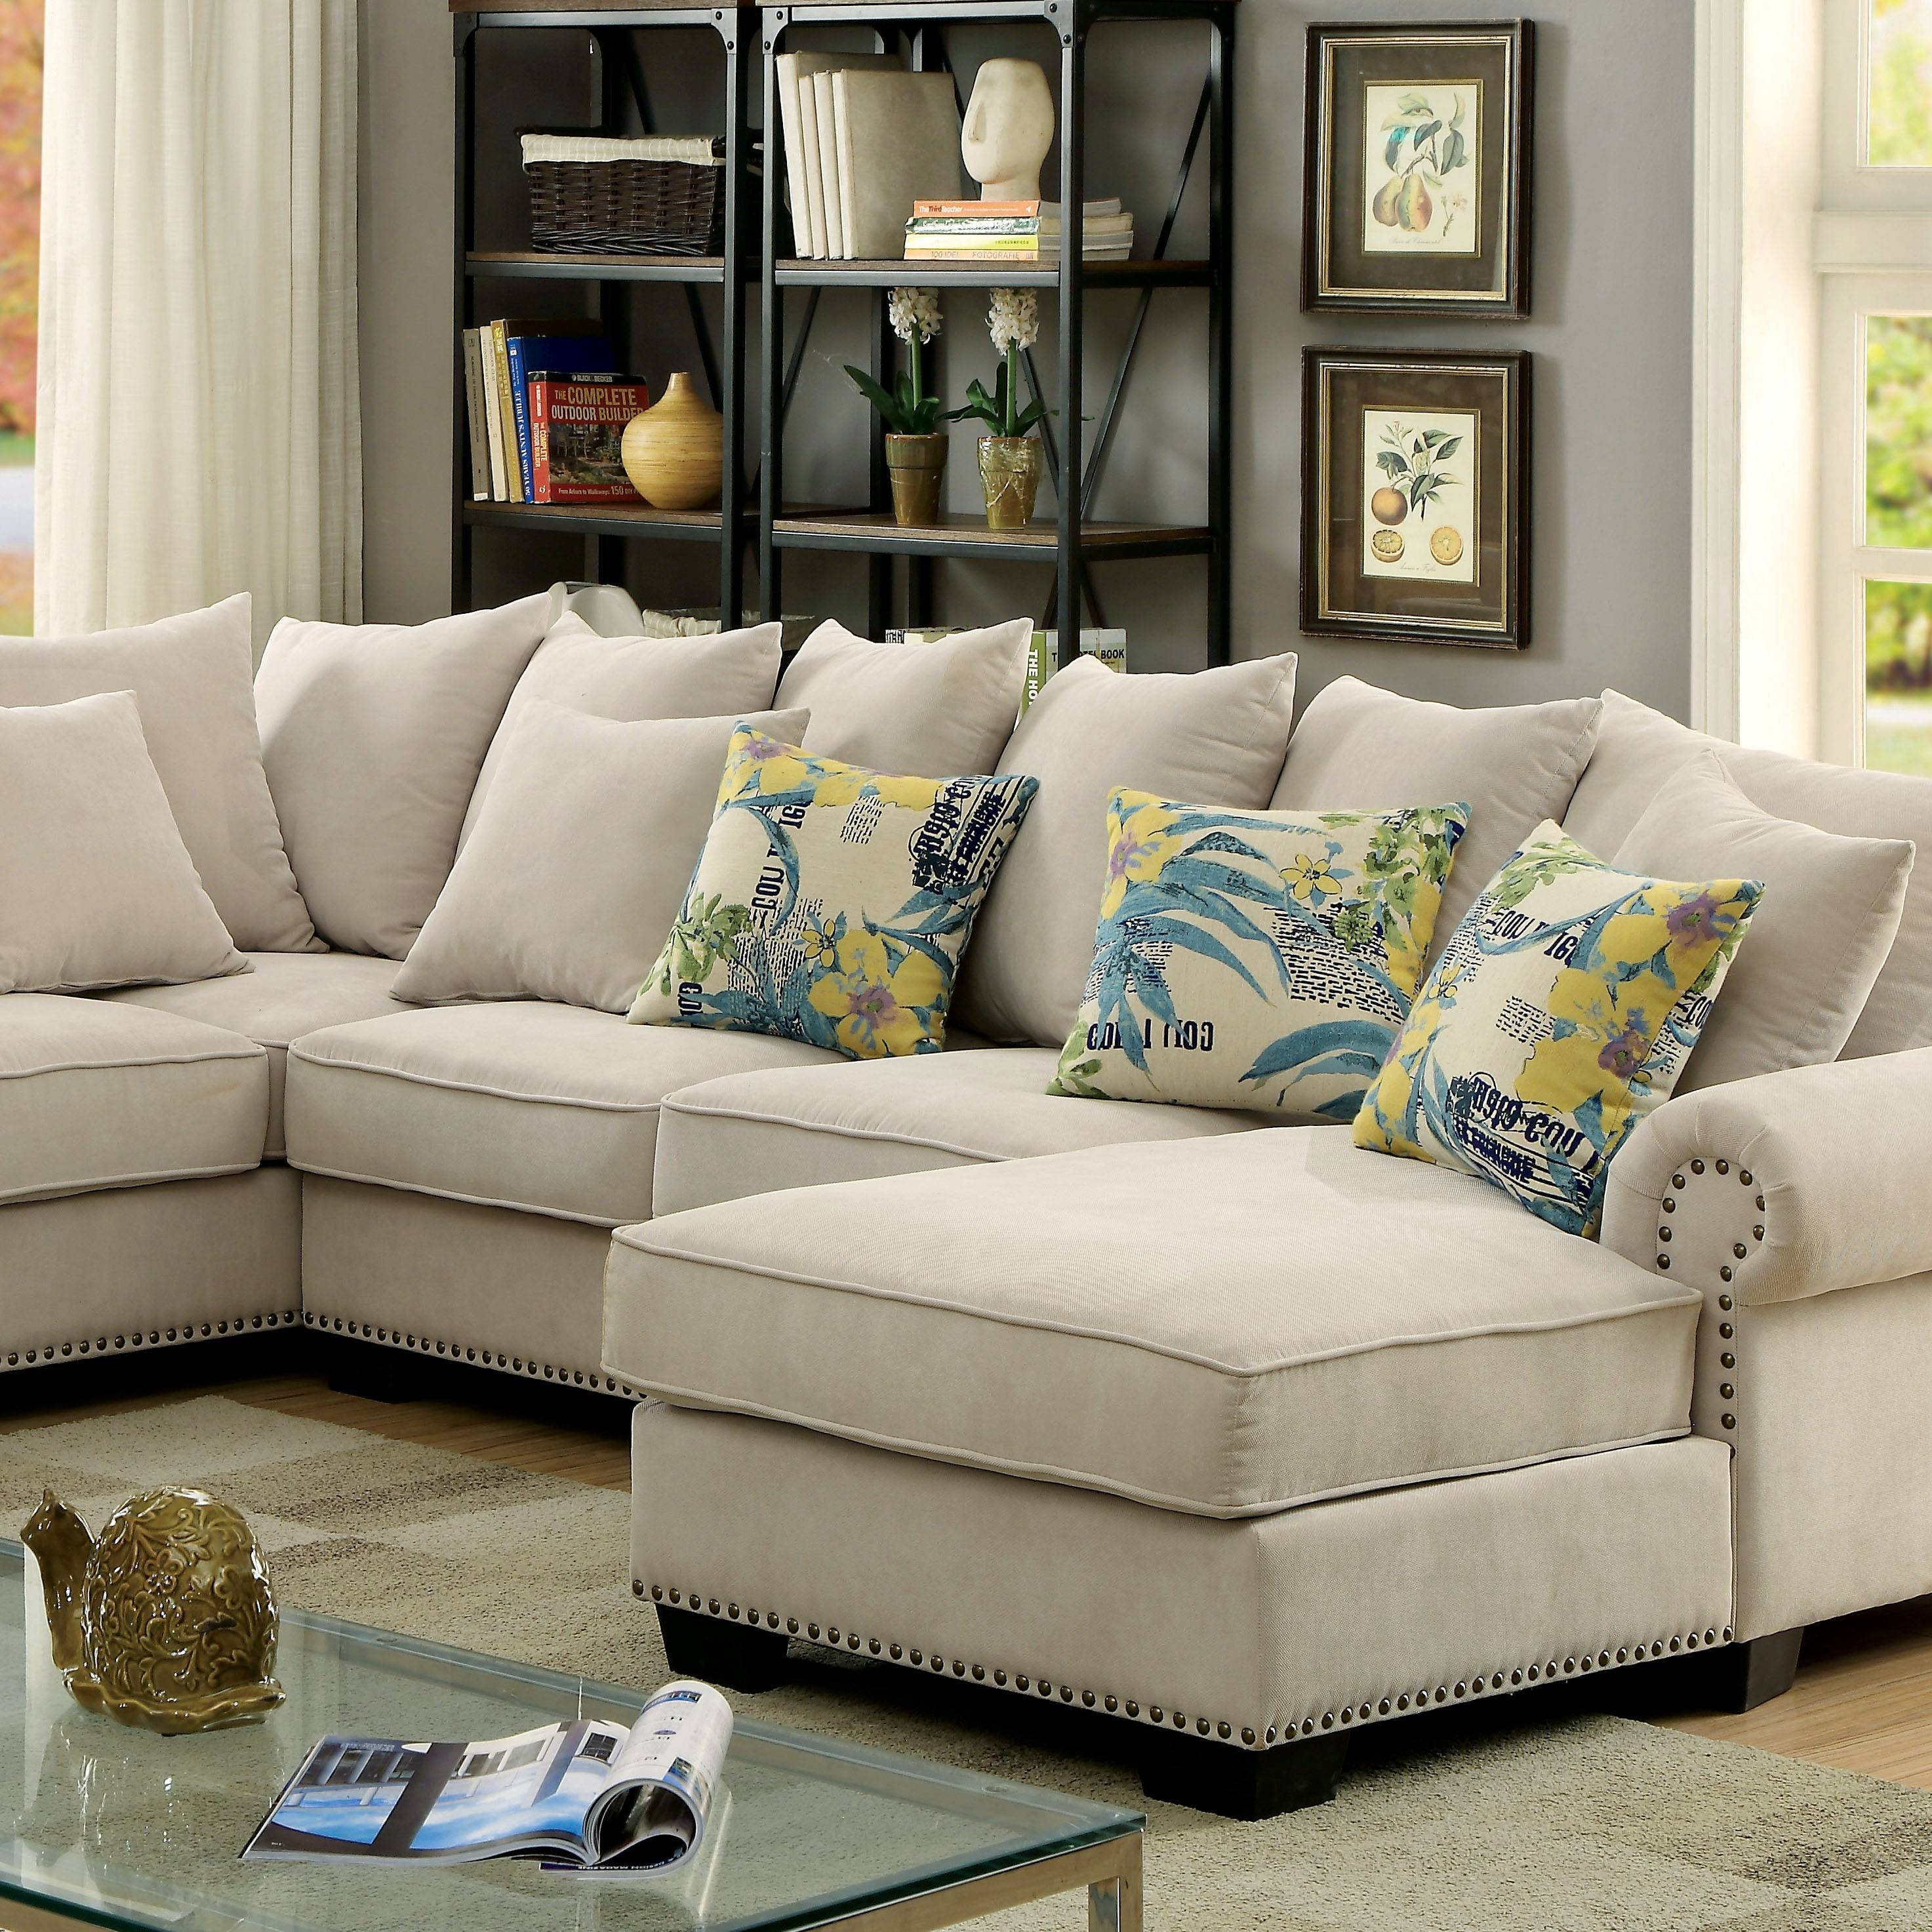 Skyler Transitional Ivory Fabric Sectional Sofa Couch intended for Fabric Sectional Sofa (Image 27 of 30)